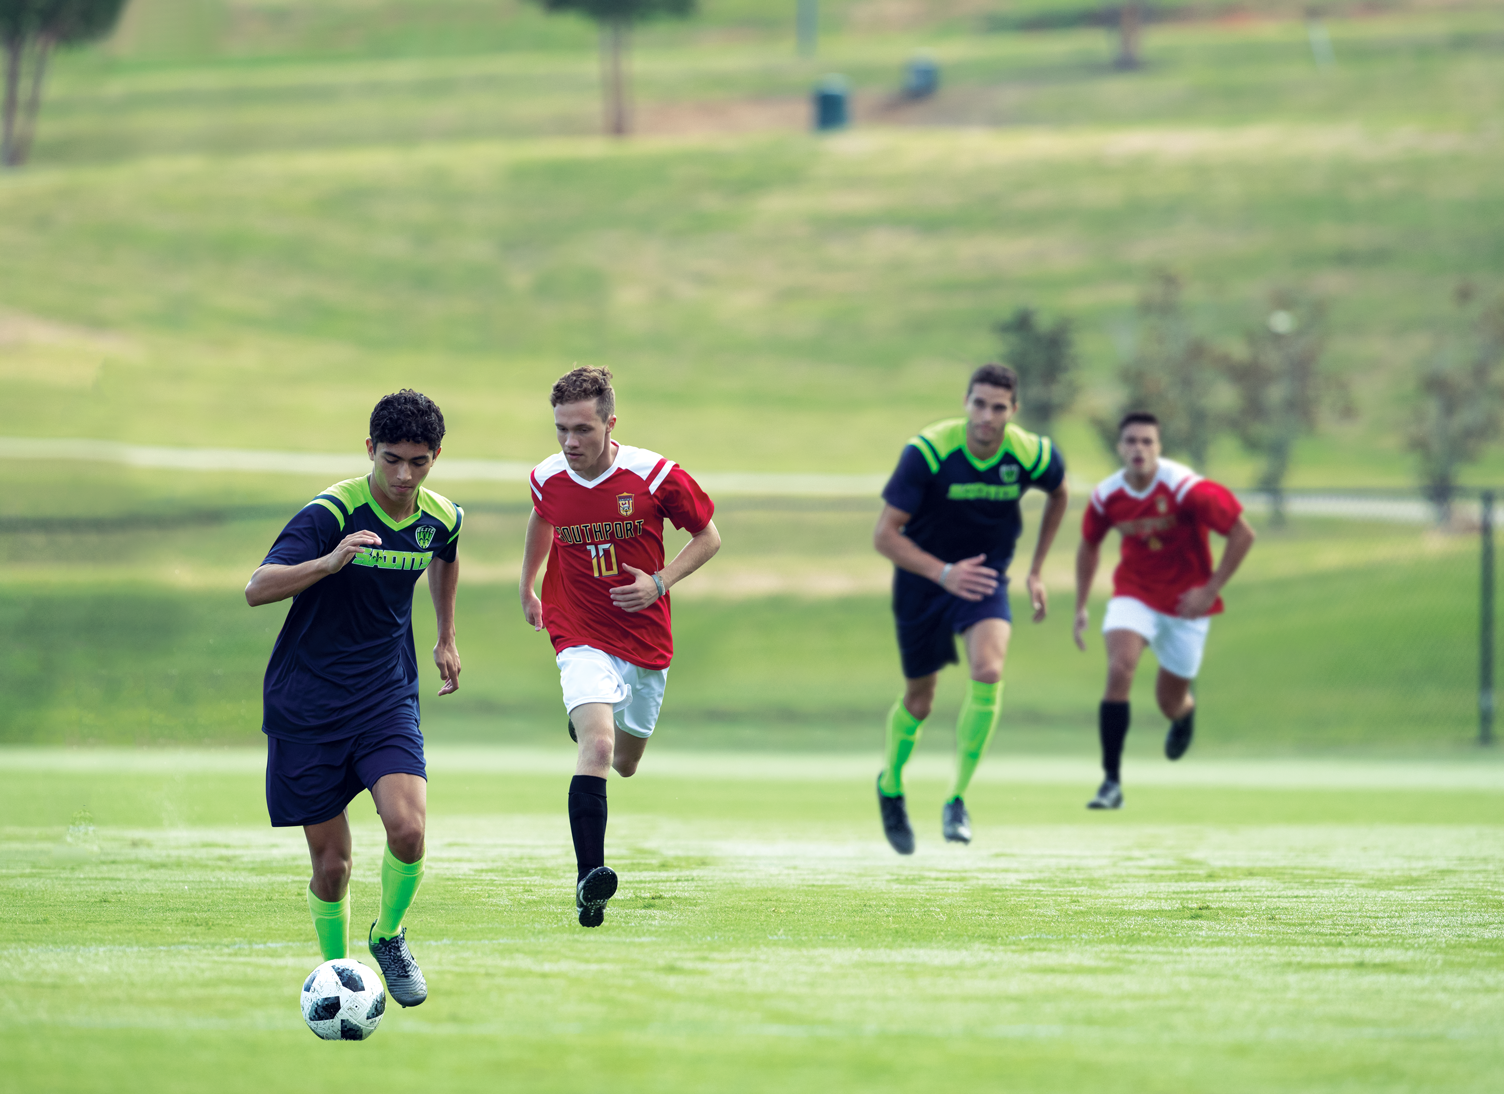 A soccer field with two opponents chasing after two players in the front